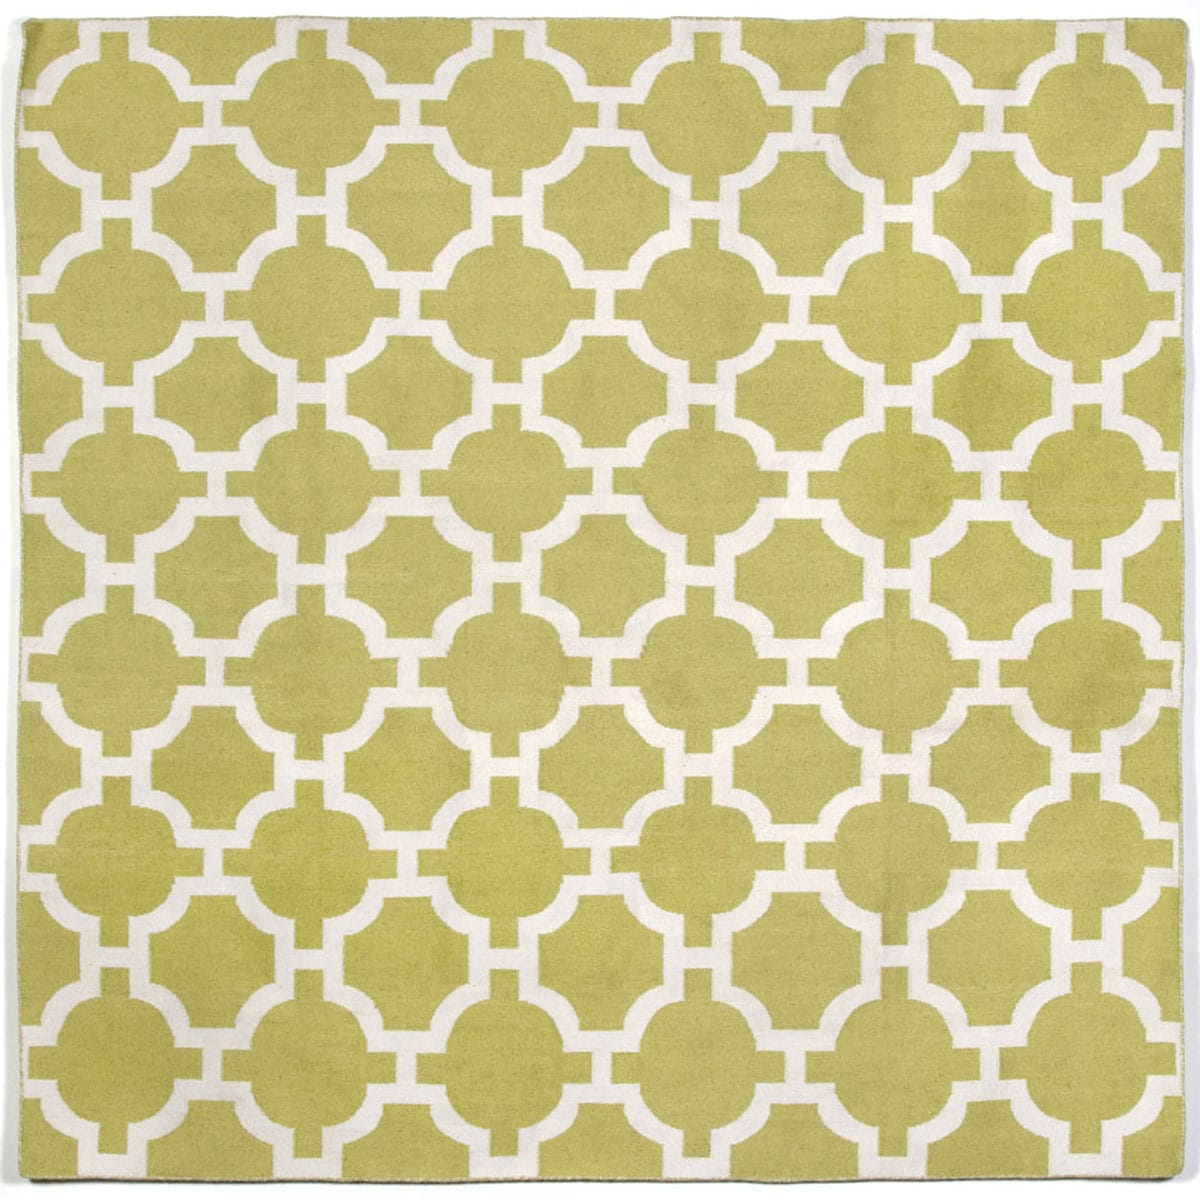 Floor Pattern Outdoor Rug 8 Square Free Shipping Today 9775270